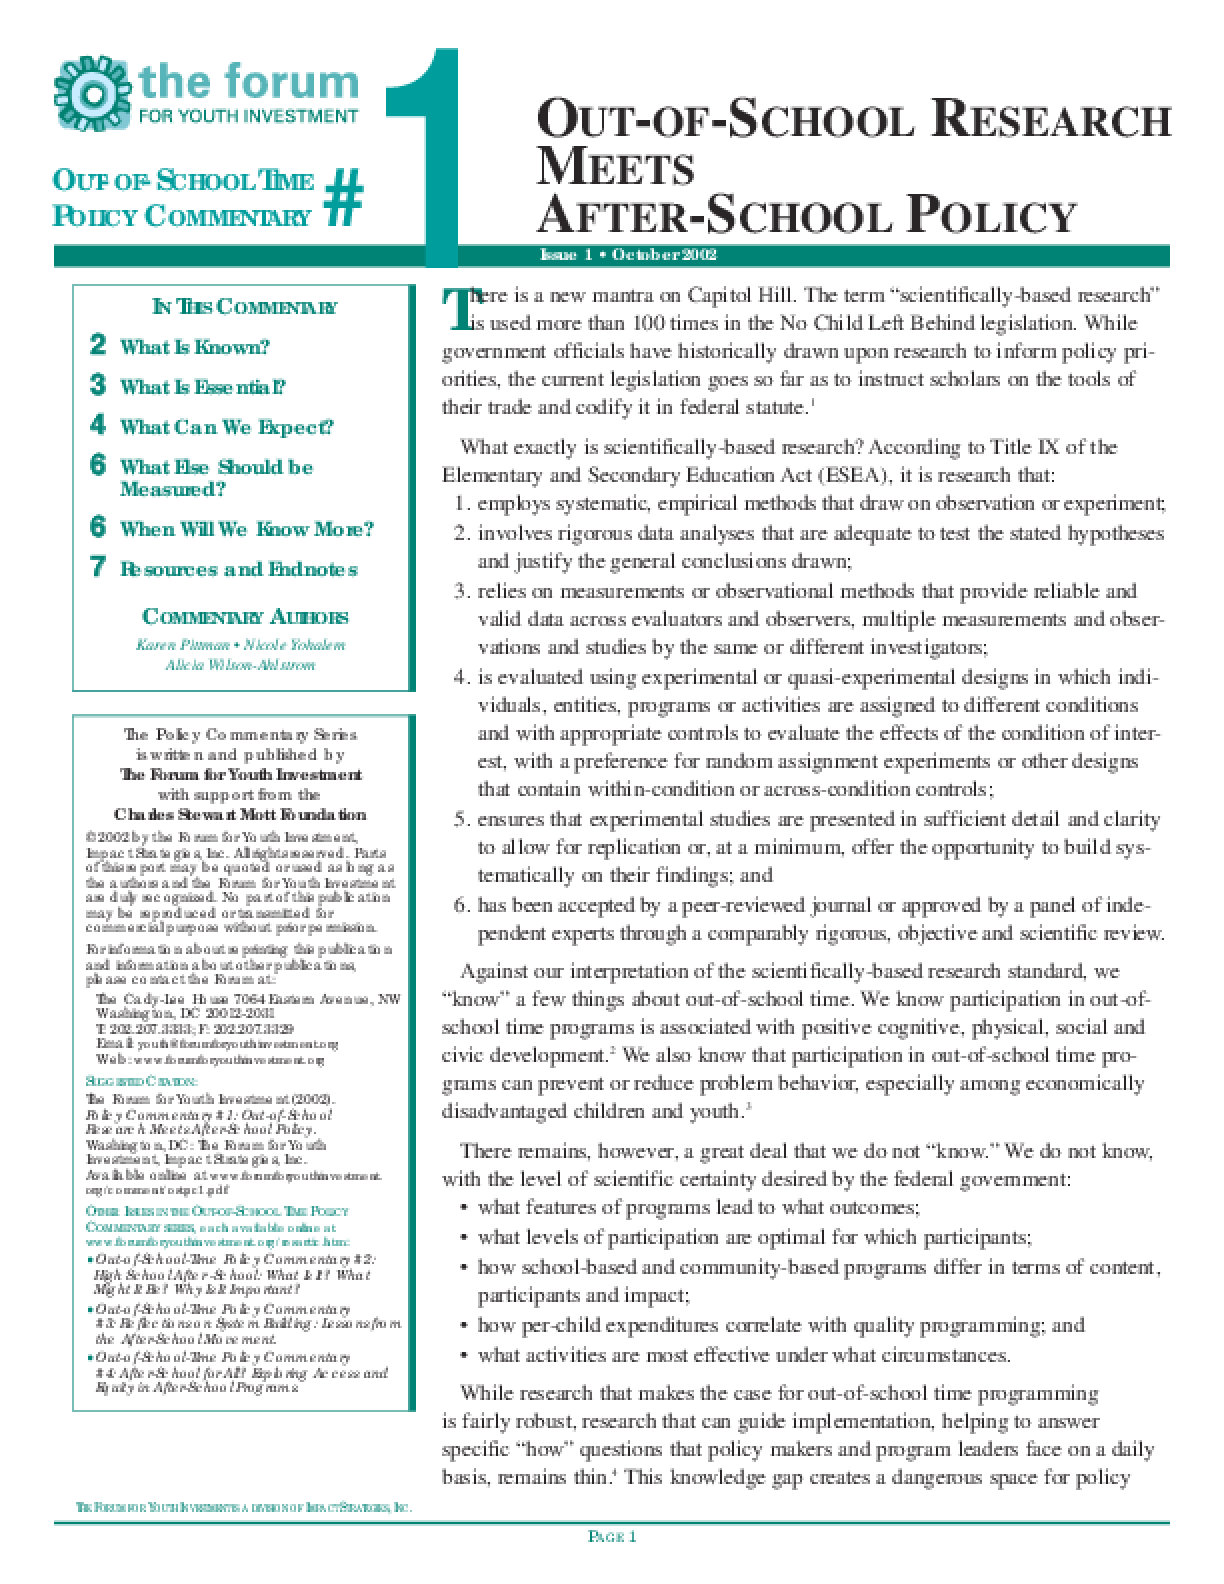 Out-of-School Time Policy Commentary #1: Out-of-School Research Meets After-School Policy